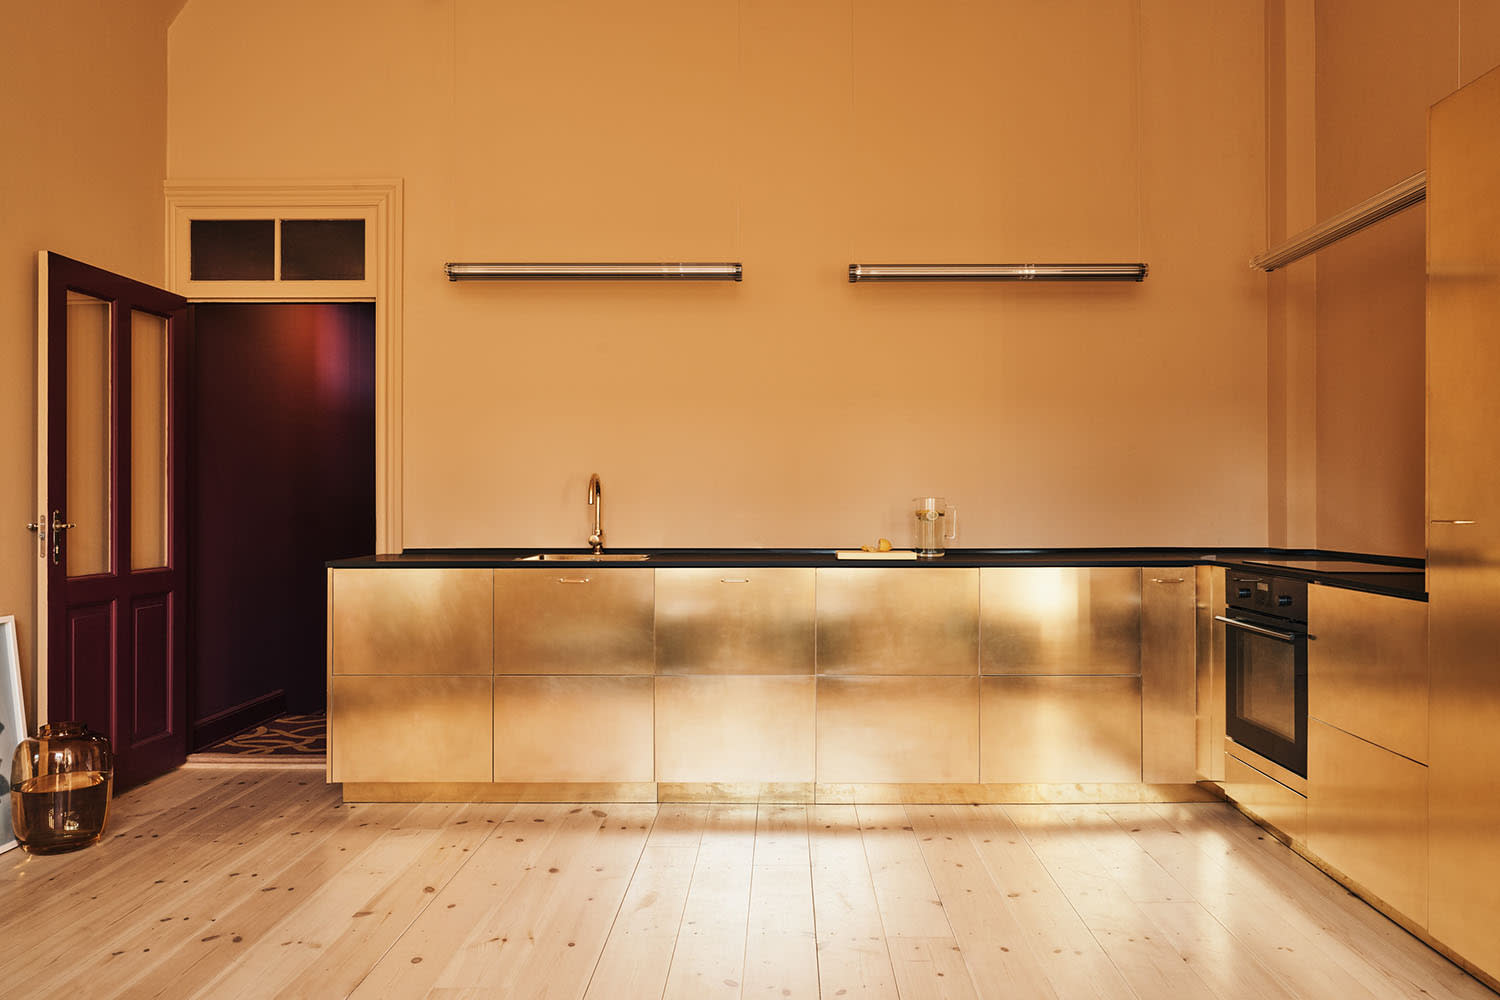 IKEA Kitchen Cabinets - Reform Brass Fronts   Apartment ...